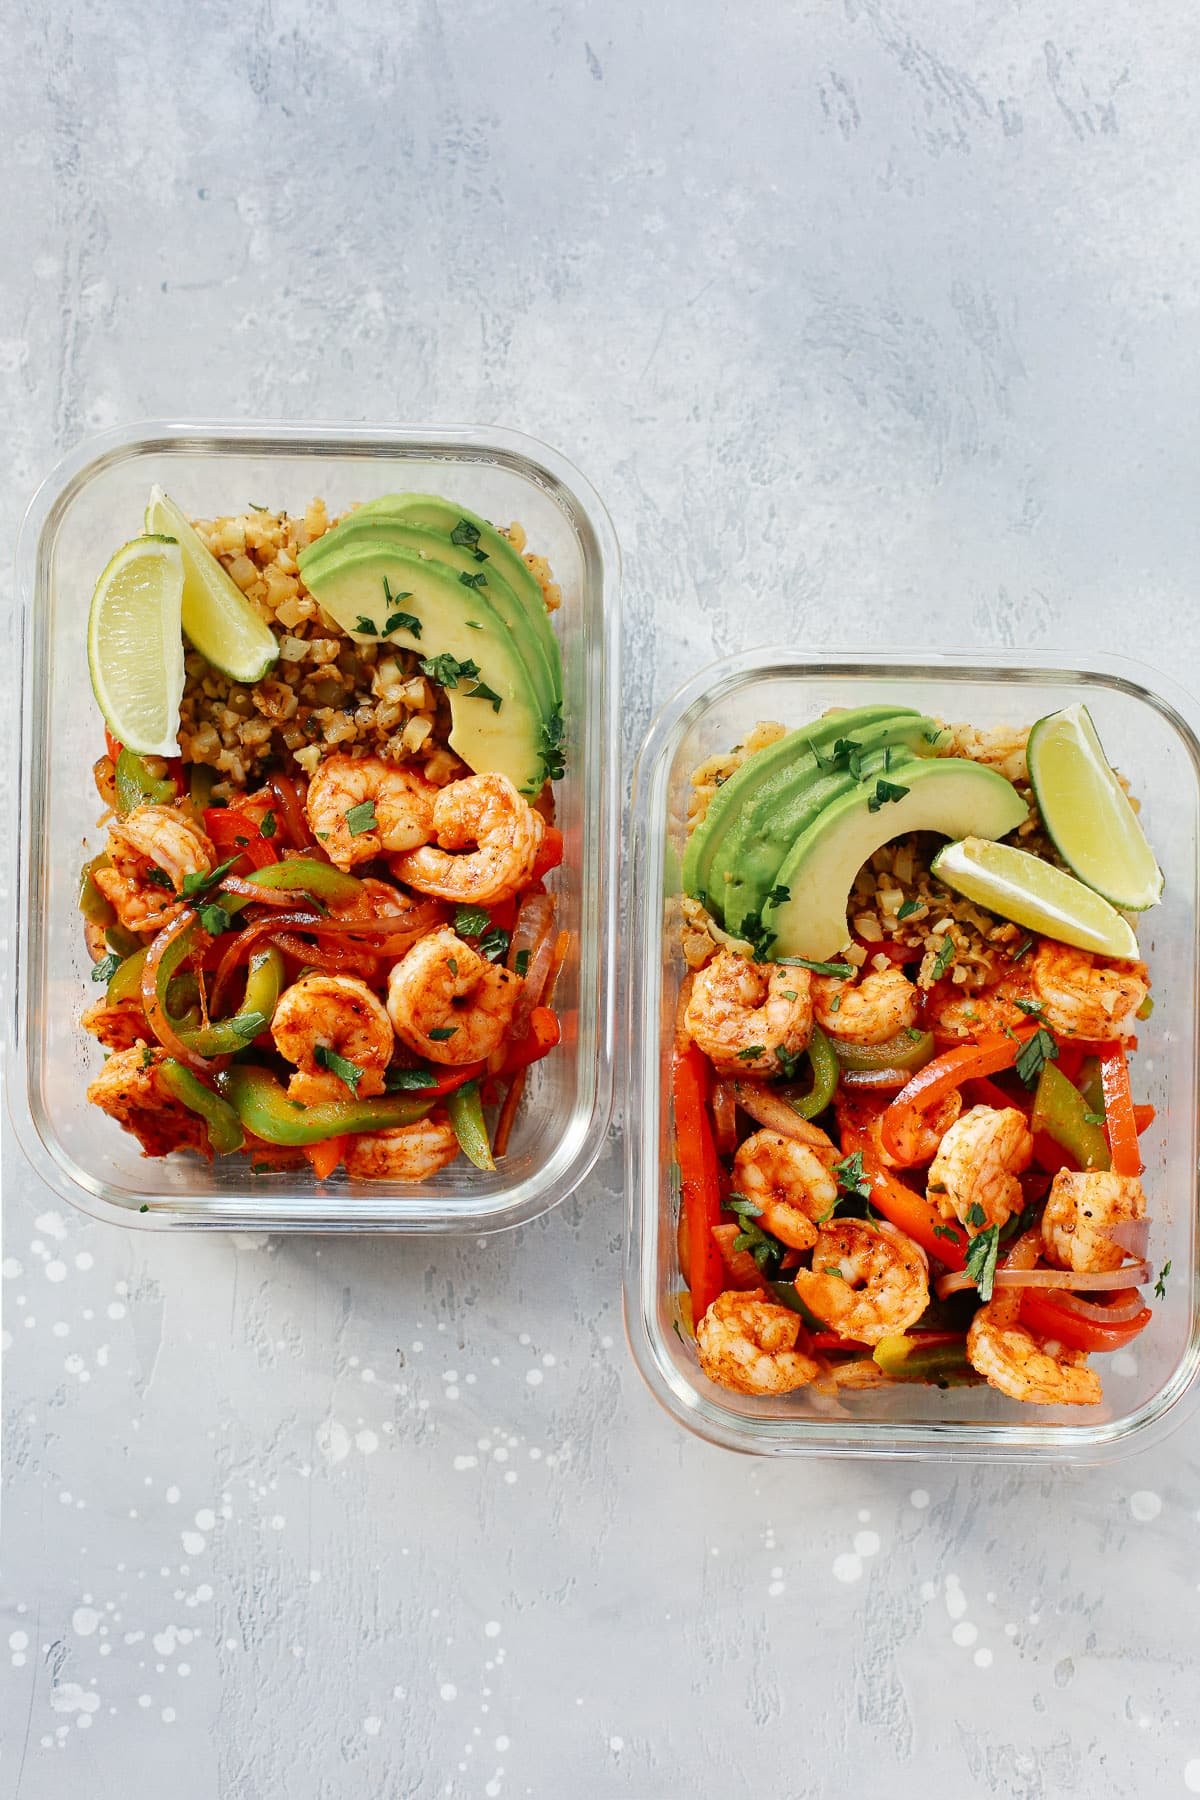 Low-Carb Shrimp Fajita Meal-Prep Bowls